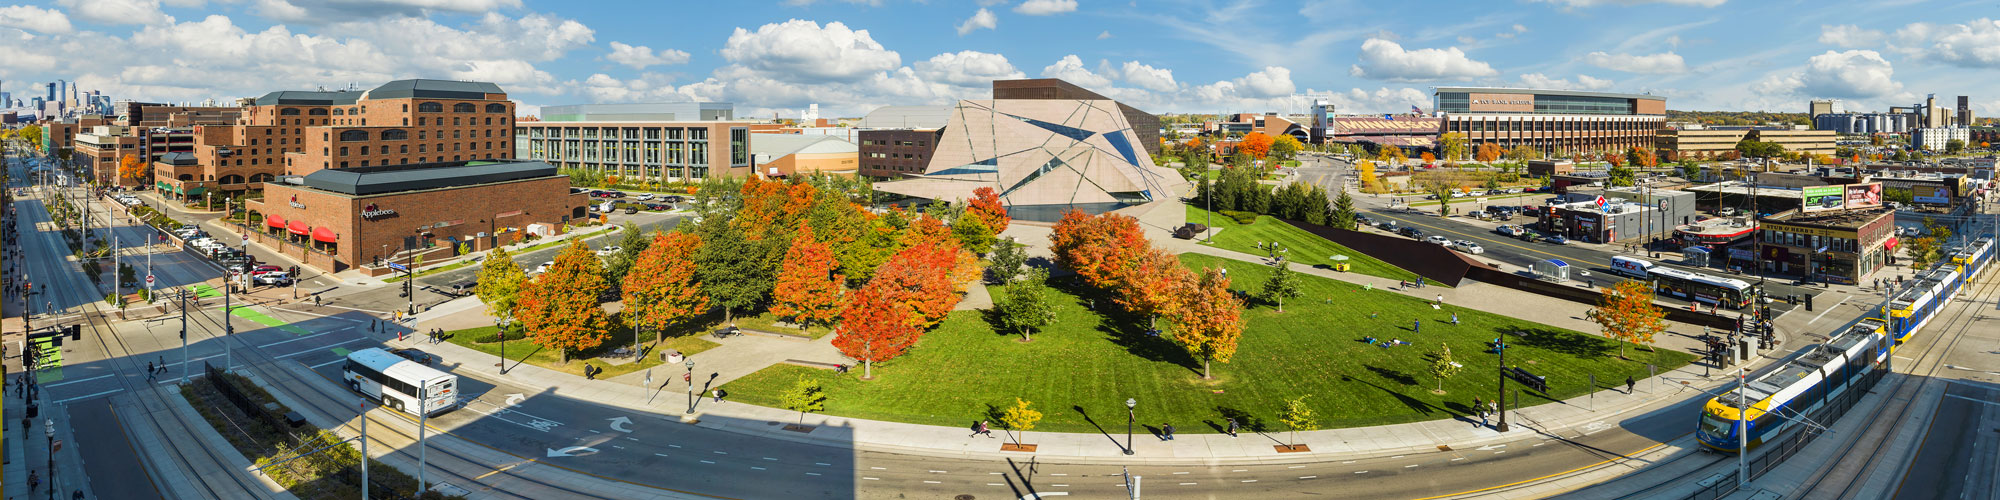 panoramic of McNamara Alumni Center